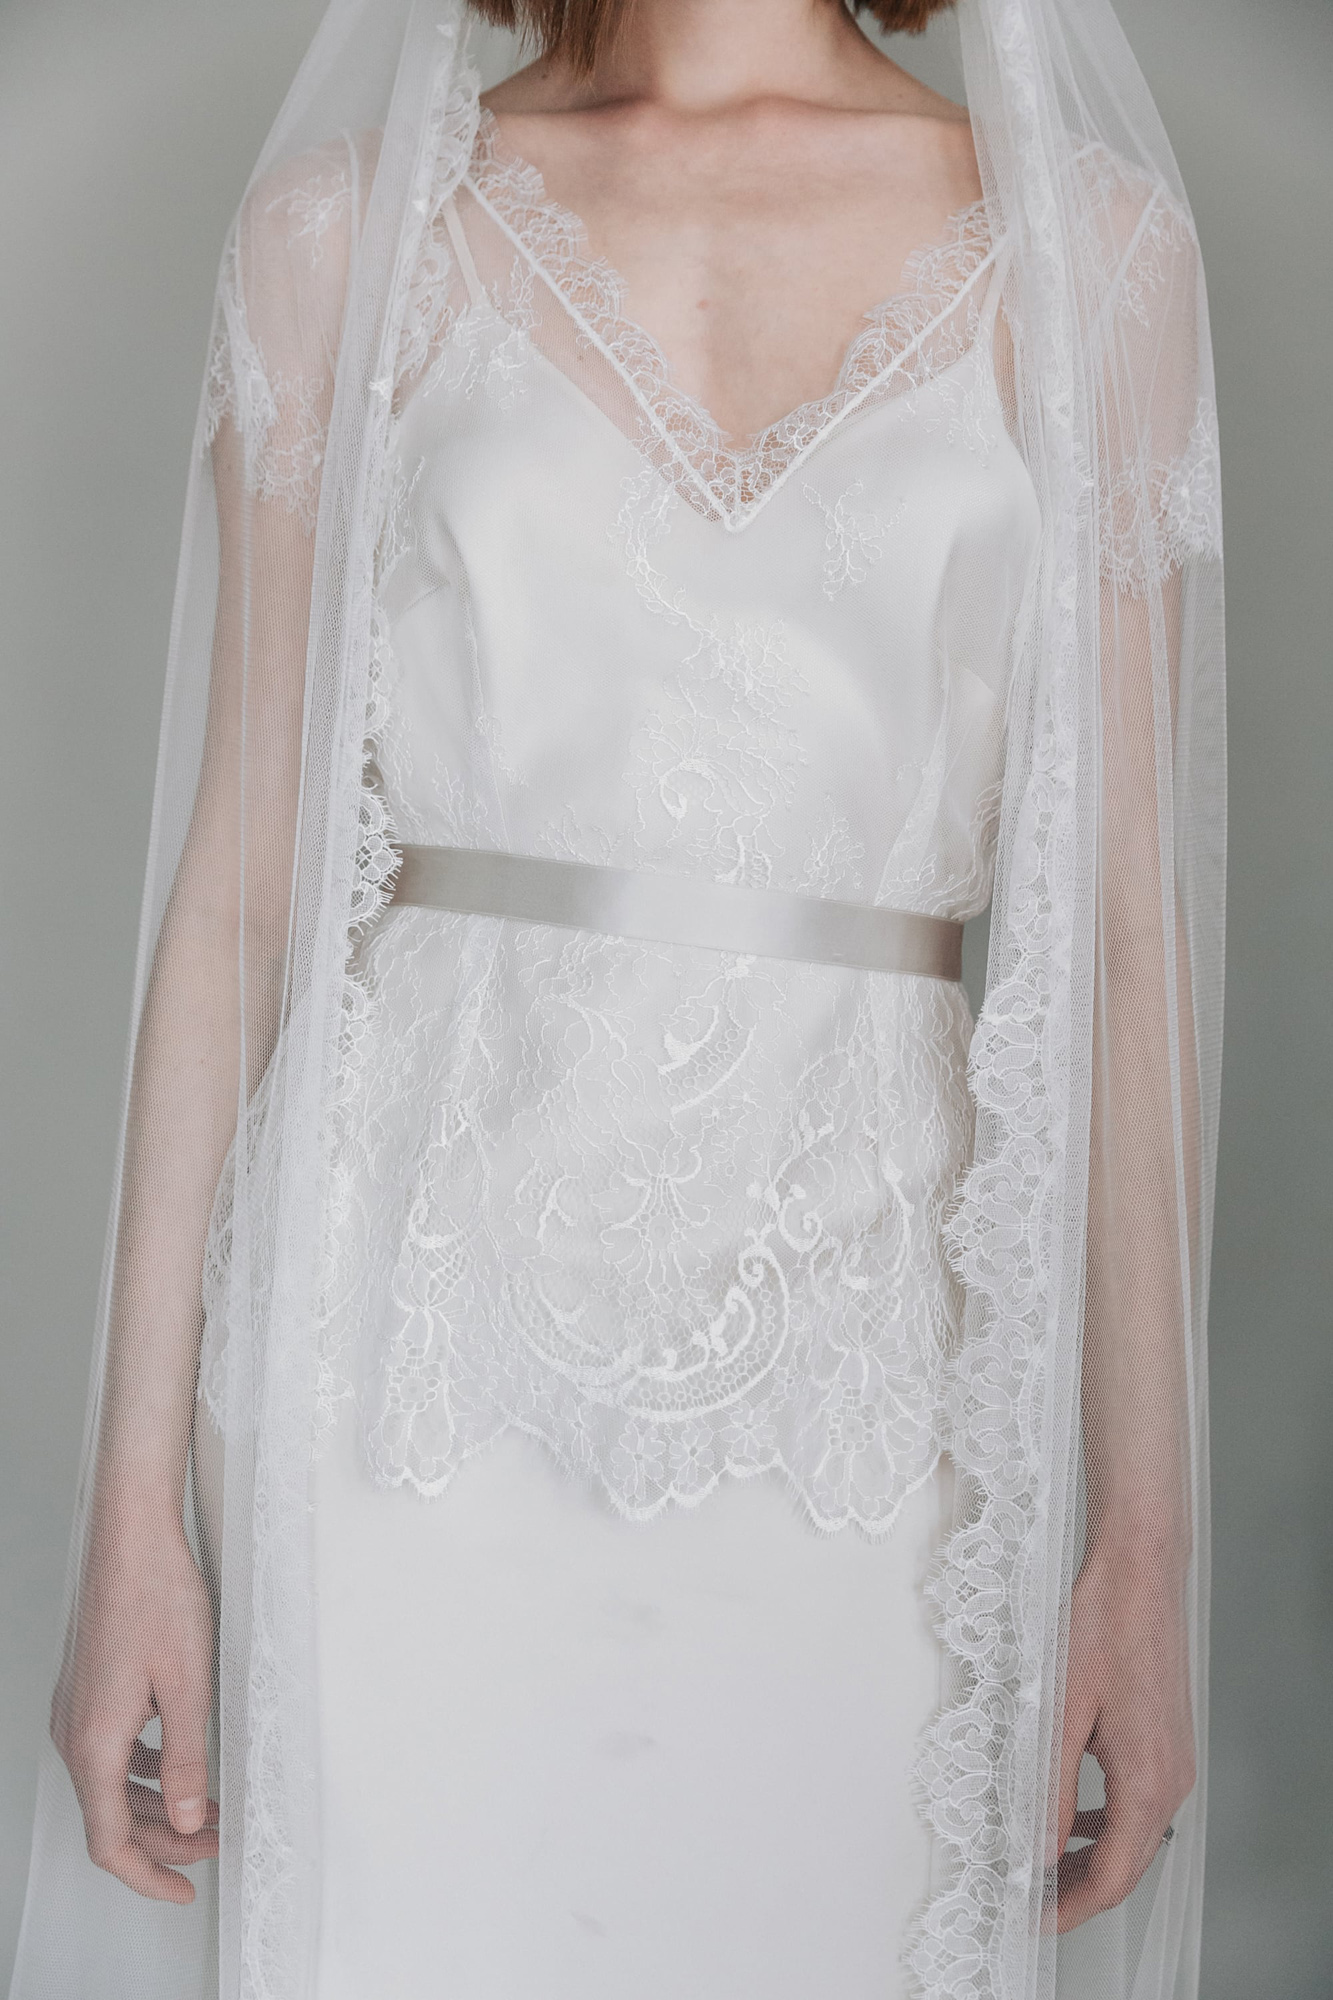 Kate-Beaumont-Sheffield-Lilac-Bridal-Separates-Lace-and-Silk-Wedding-Gown-12.jpg